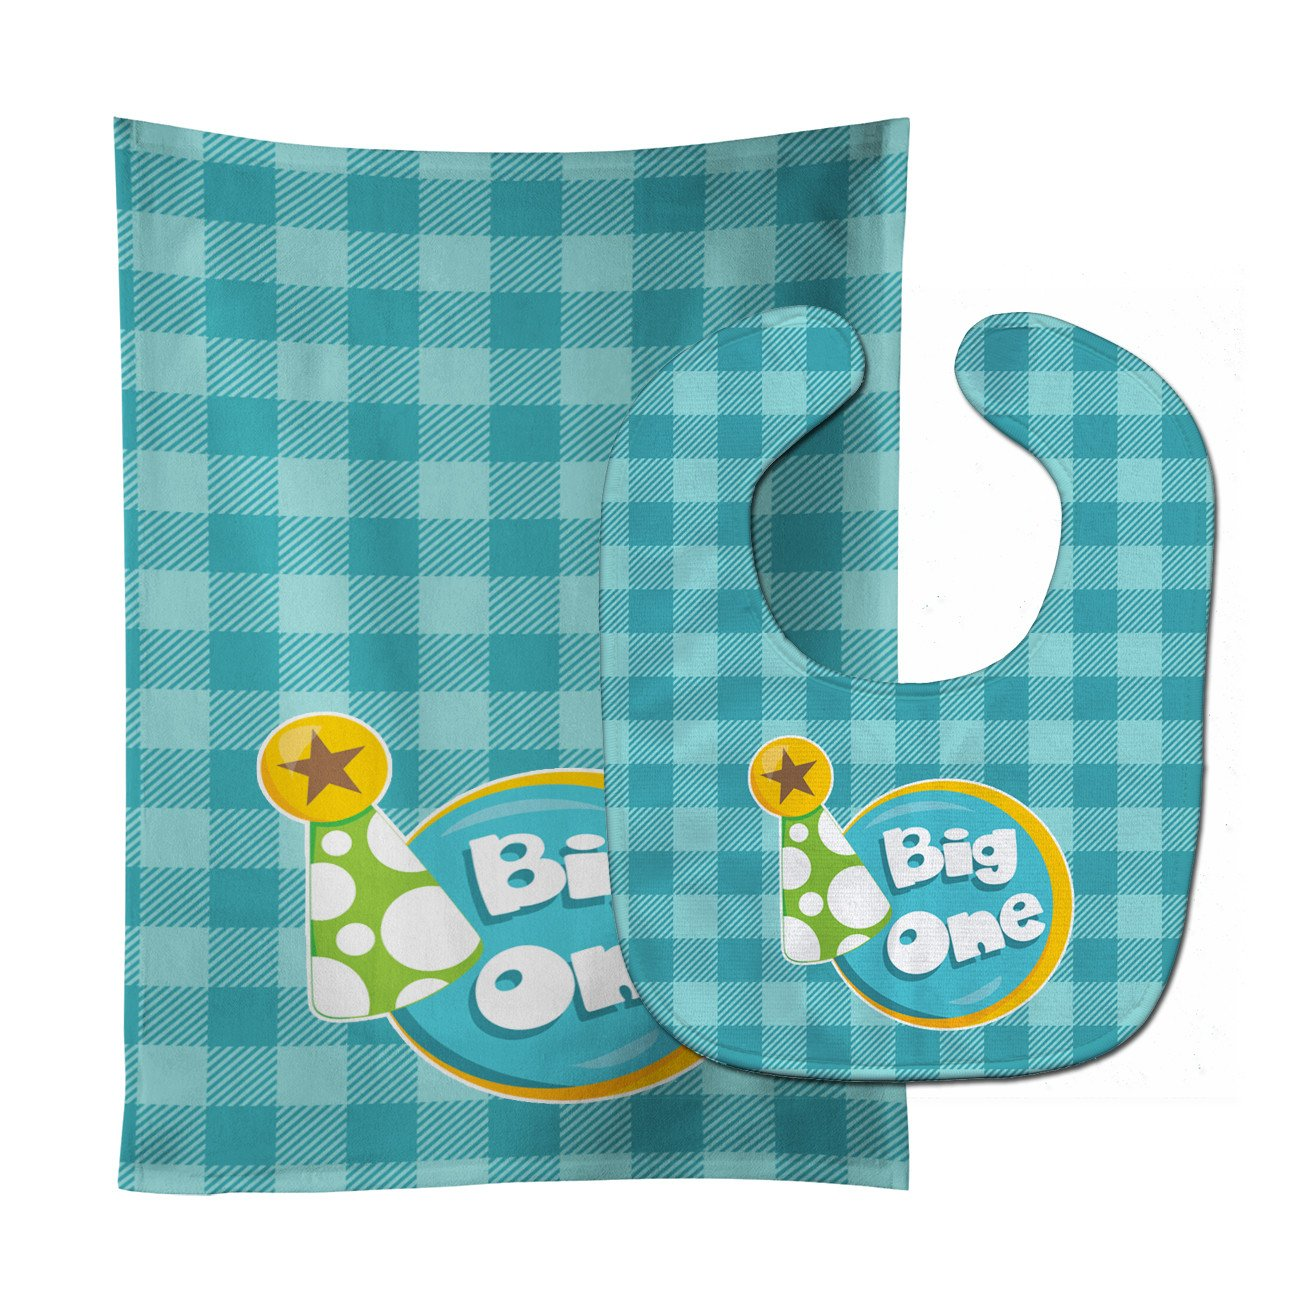 Boy Big One Baby Bib & Burp Cloth BB6824STBU by Caroline's Treasures